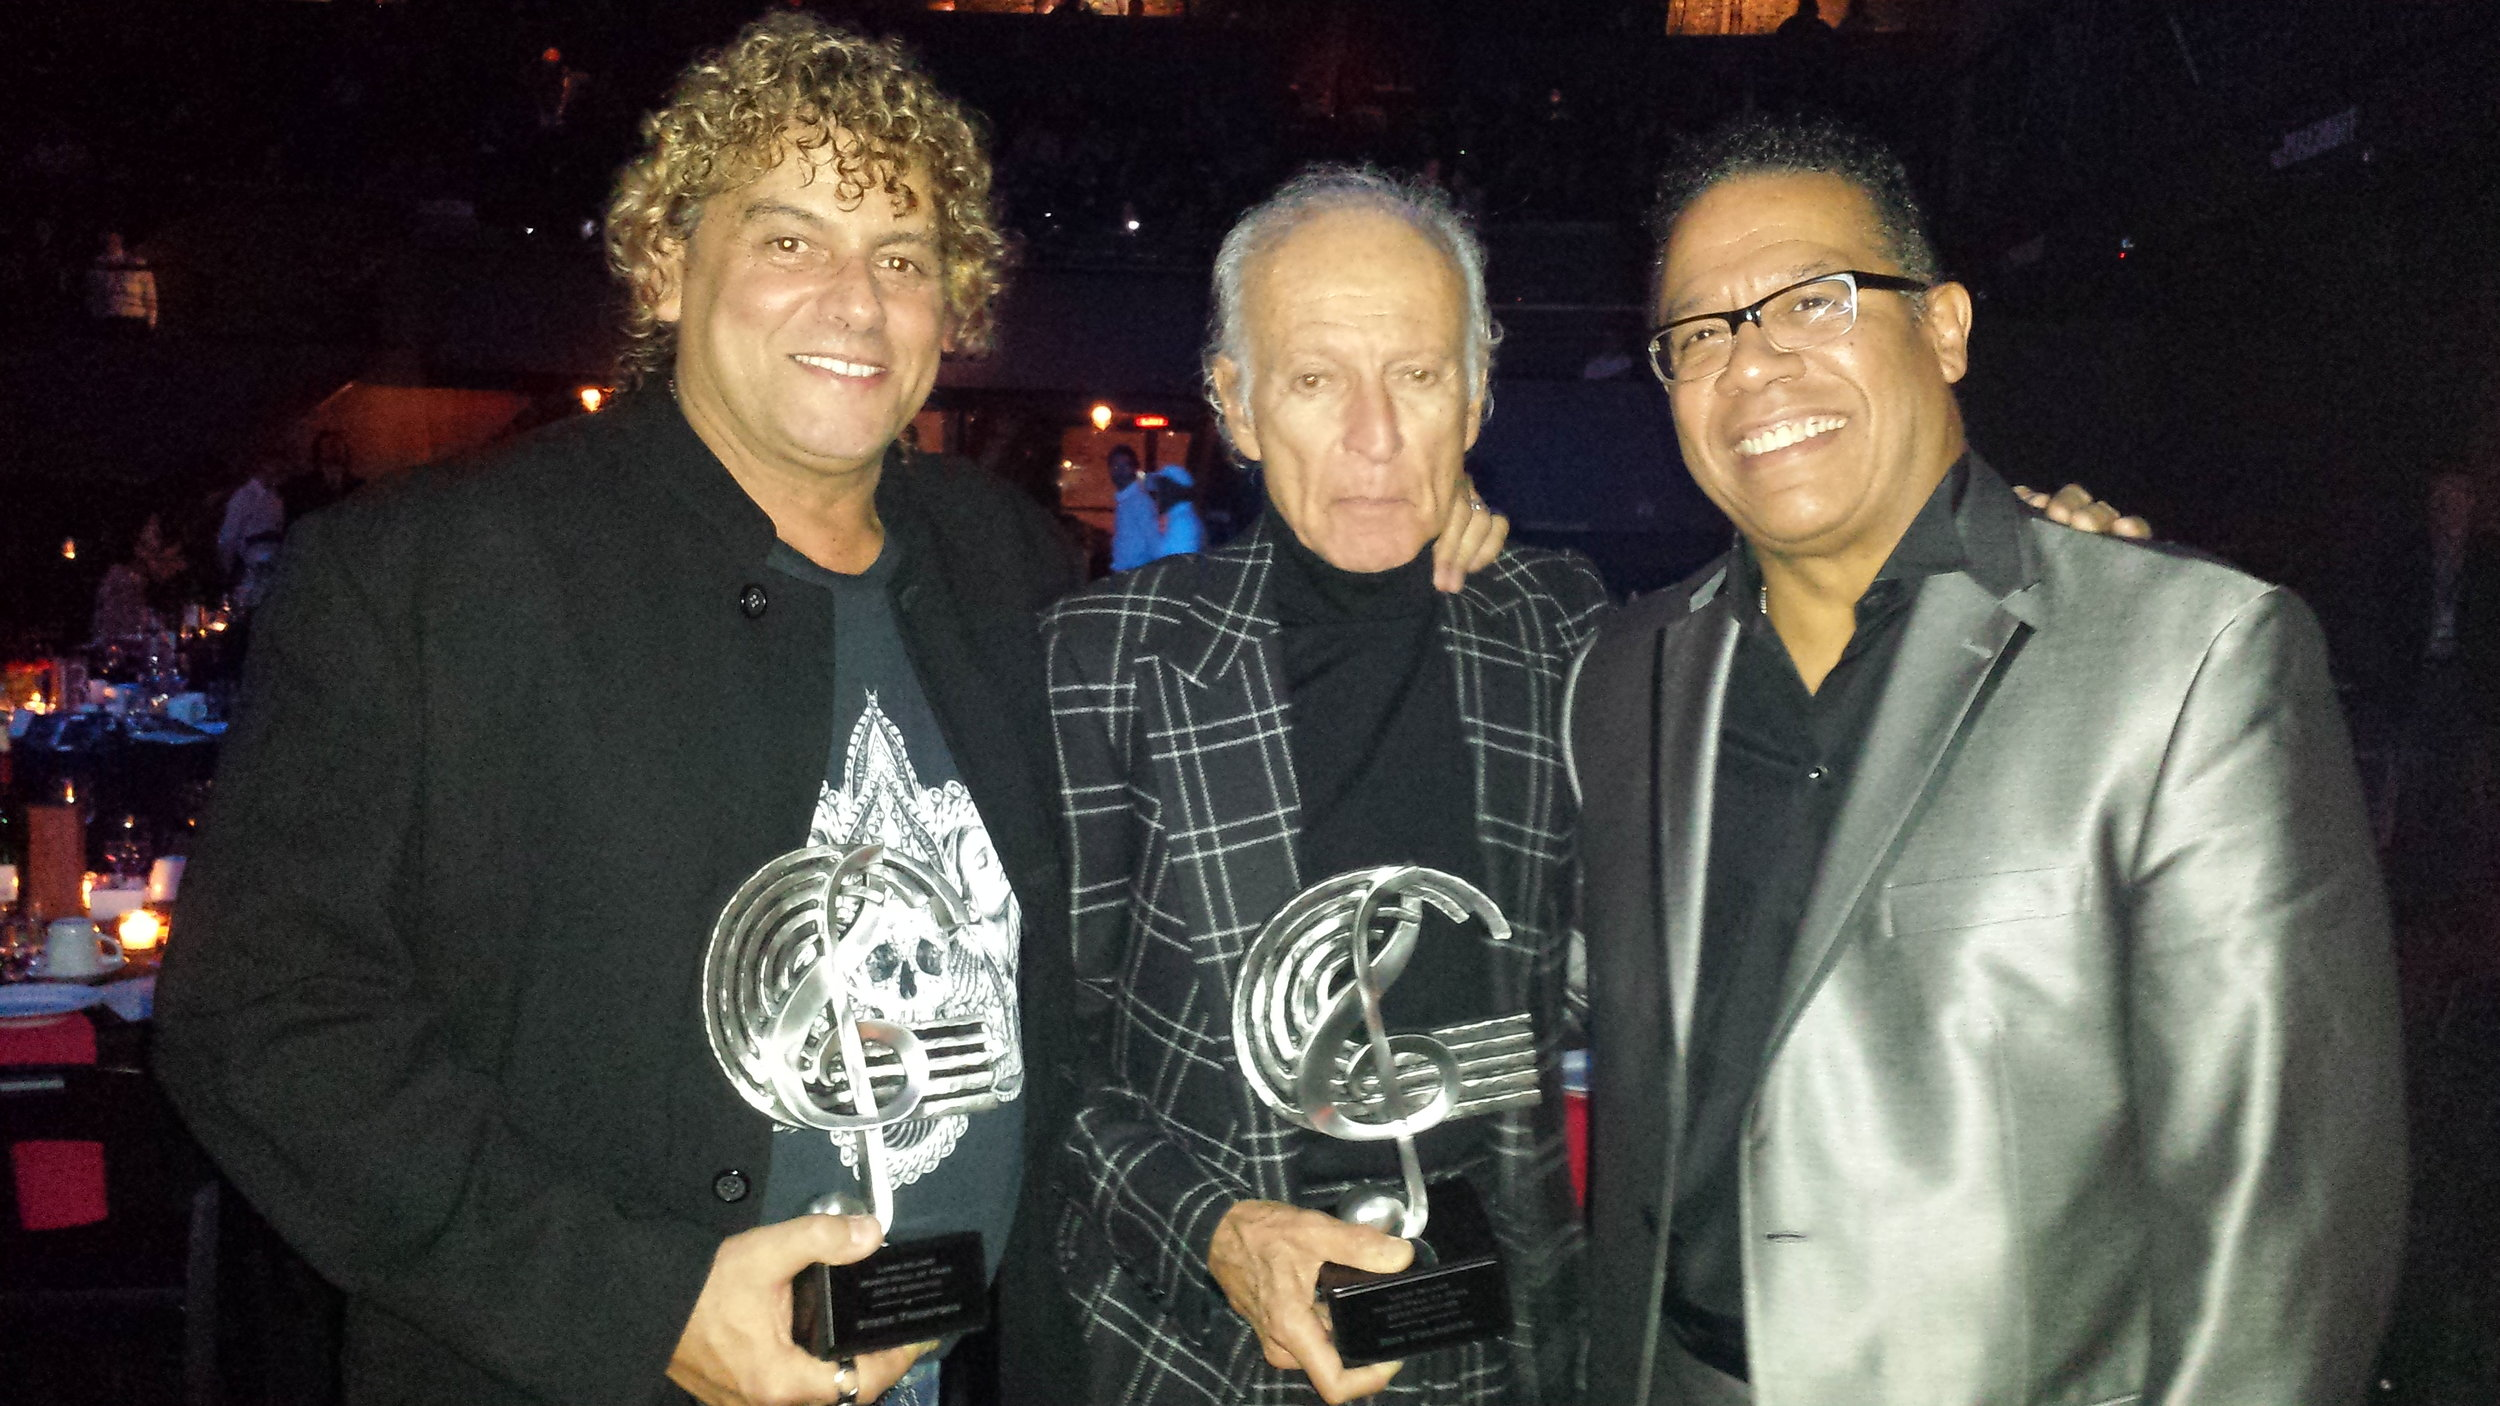 Long Island Music Hall of Fame with Steve Thompson, Ron Delsner, and Carlos Alomar.